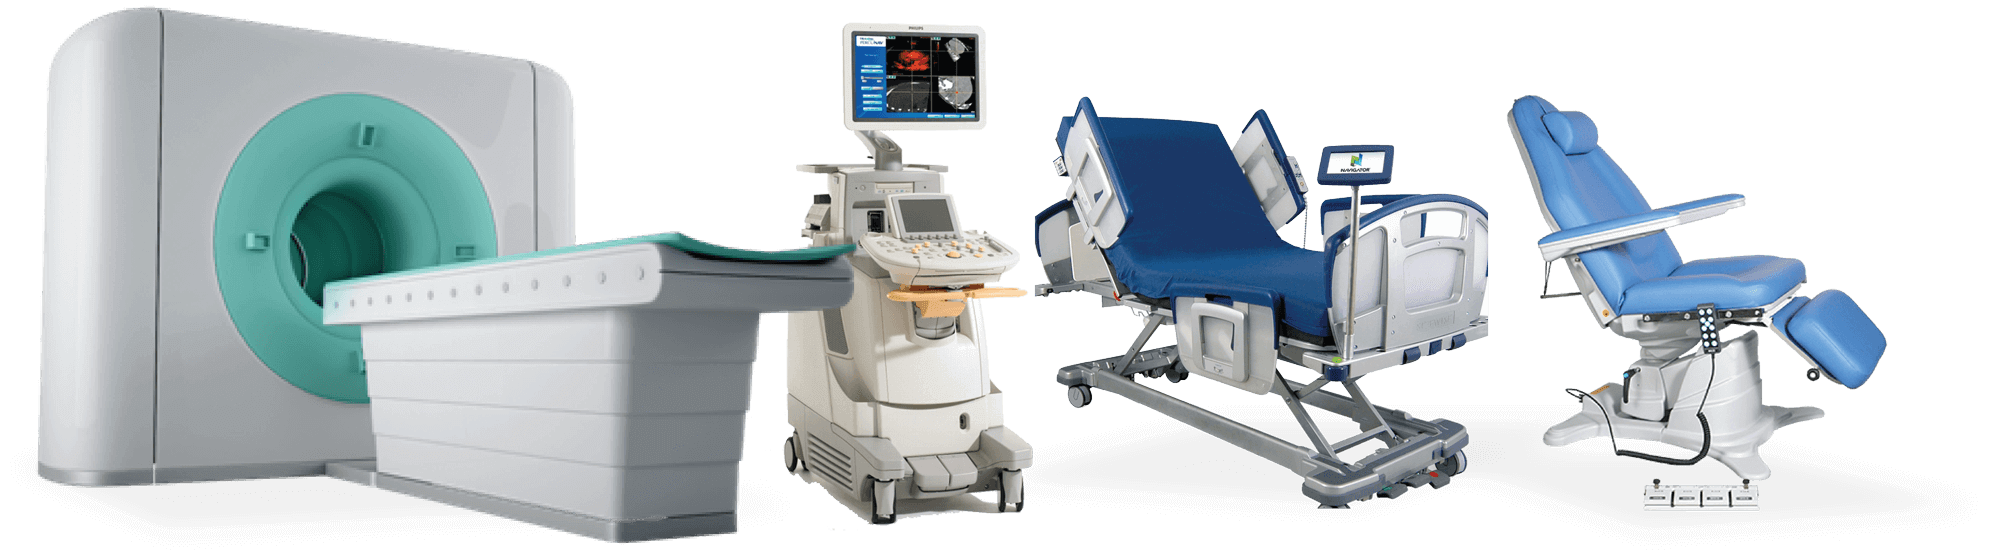 Certified Medical Equipments TGOHN Springfield, MO